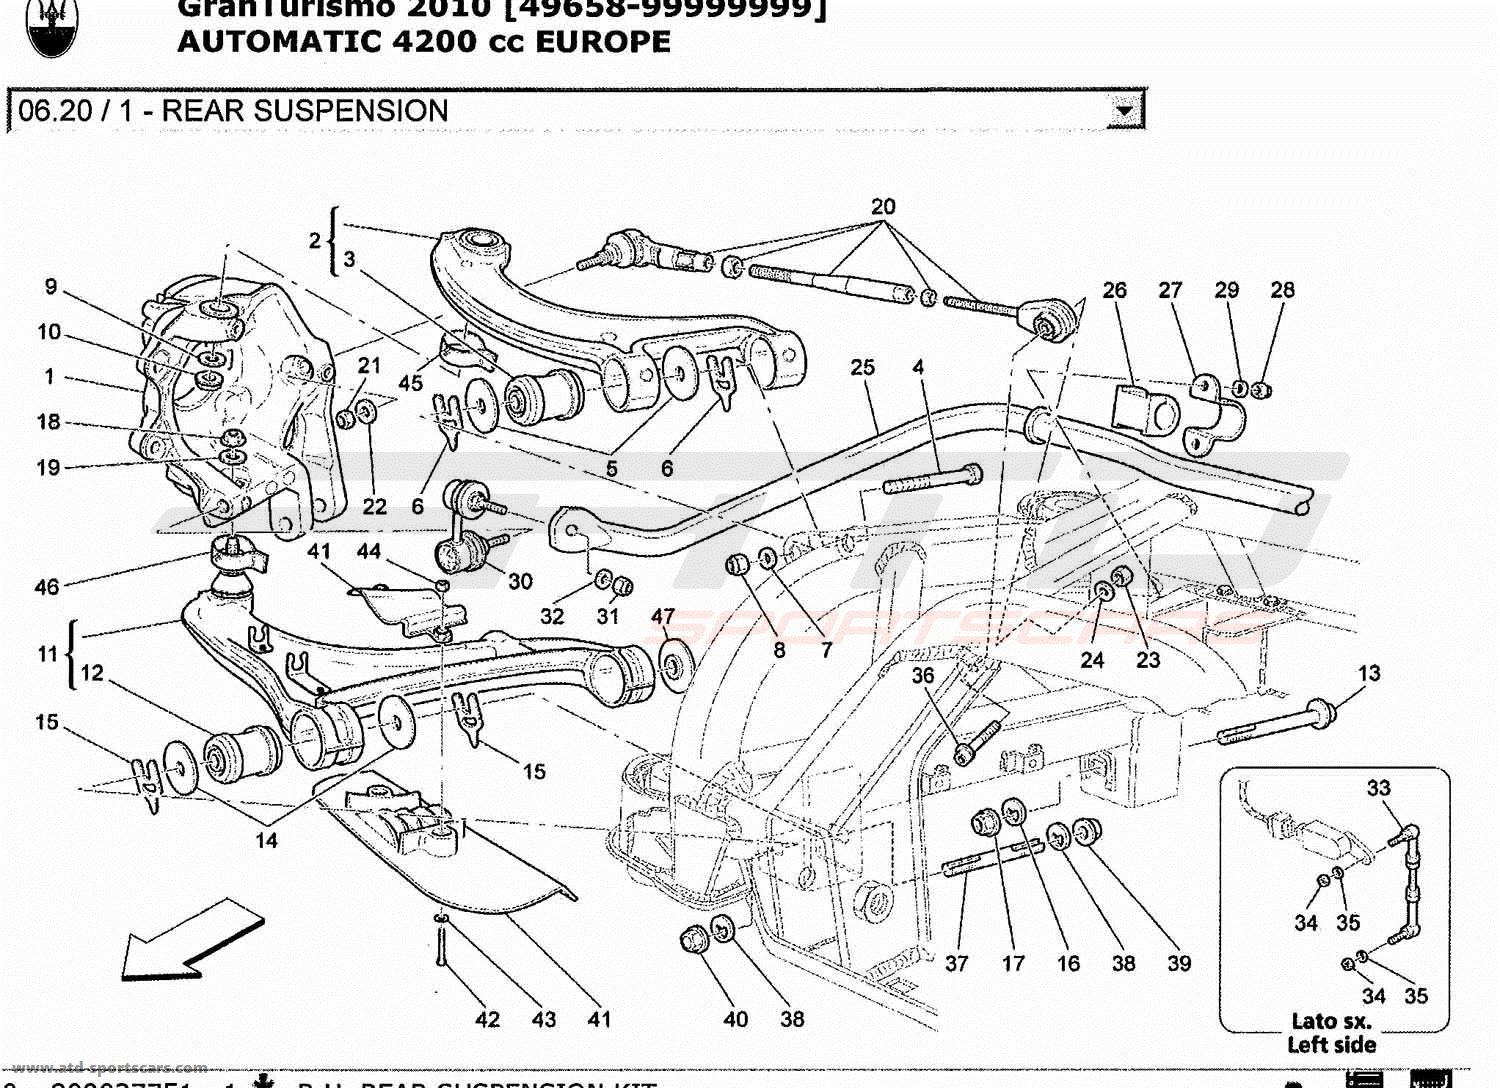 1997 Subaru Outback Rear Suspension Diagram Wiring Diagrams Wheel Legacy L Engine Auto Battery